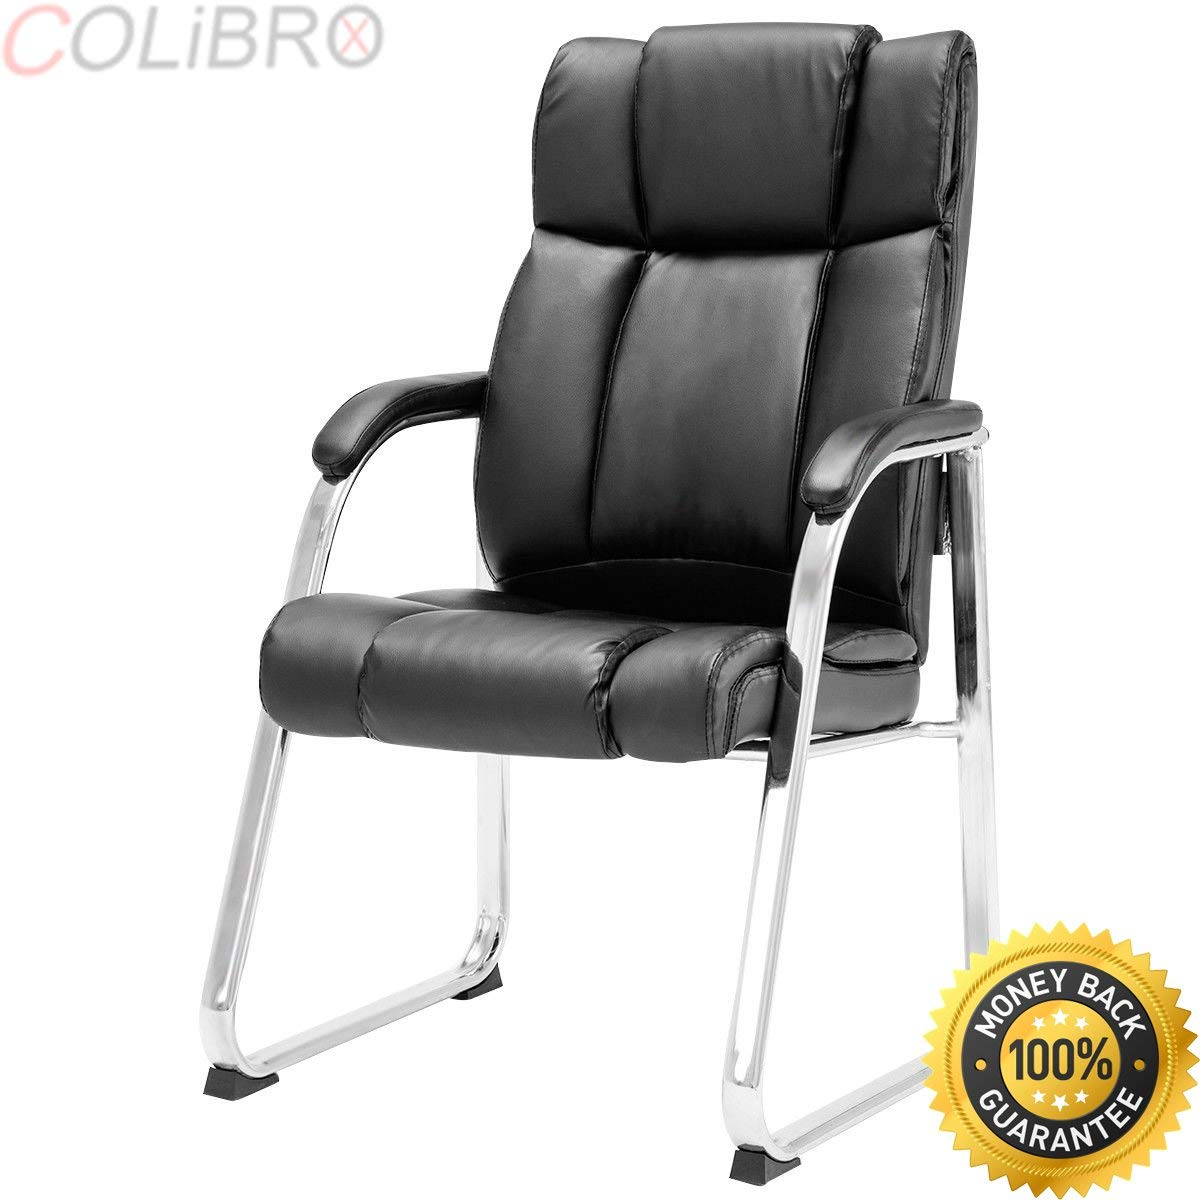 COLIBROX--Set of 2 PU Conference Chair High Back Reception Guest Office Lecture Exam Chair. office guest chairs. best waiting room chairs amazon. modern office guest chairs. stylish desk chair.